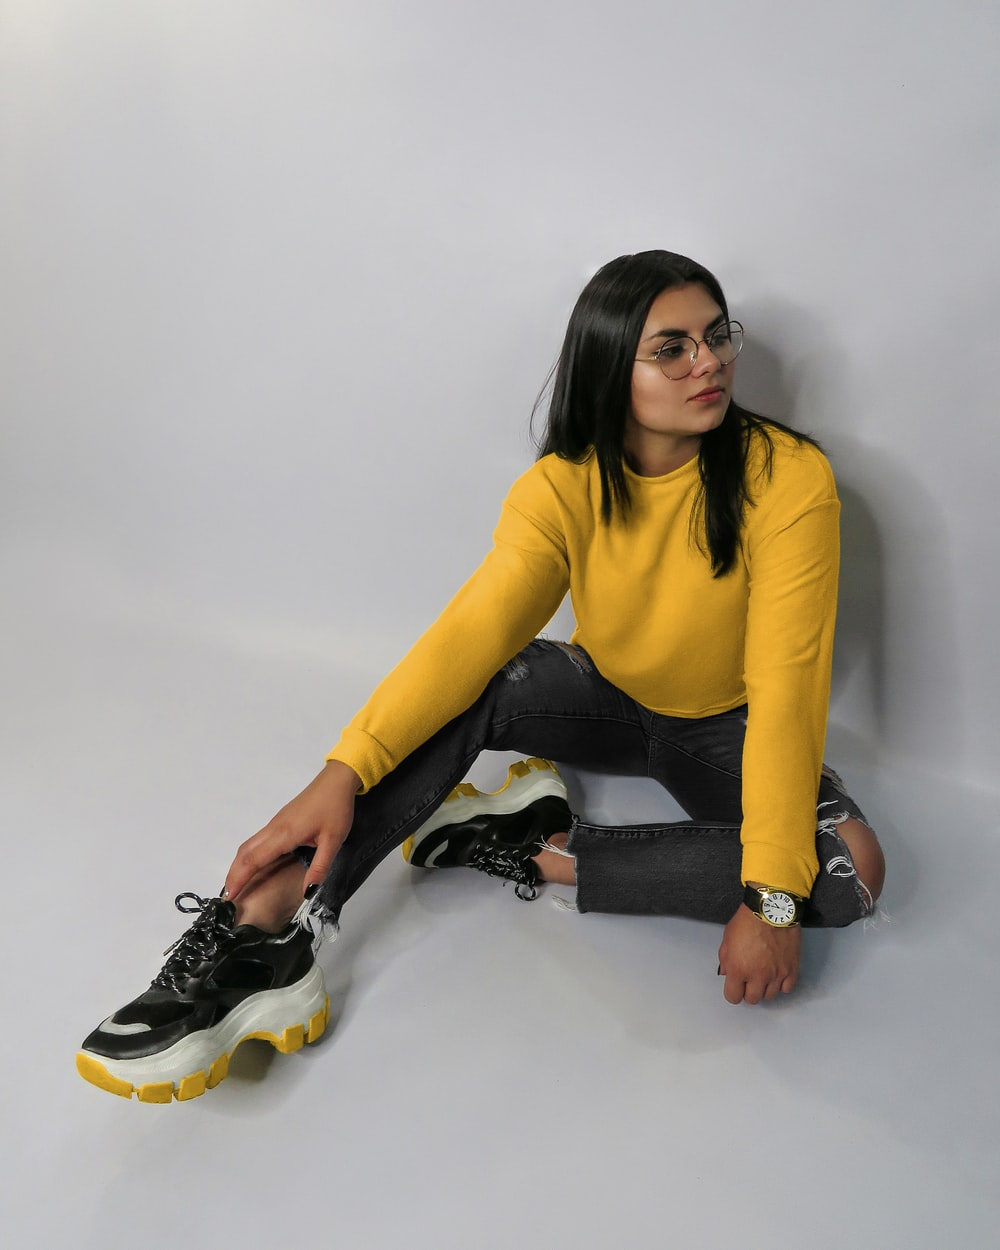 woman in yellow long sleeve shirt and black pants sitting on white floor